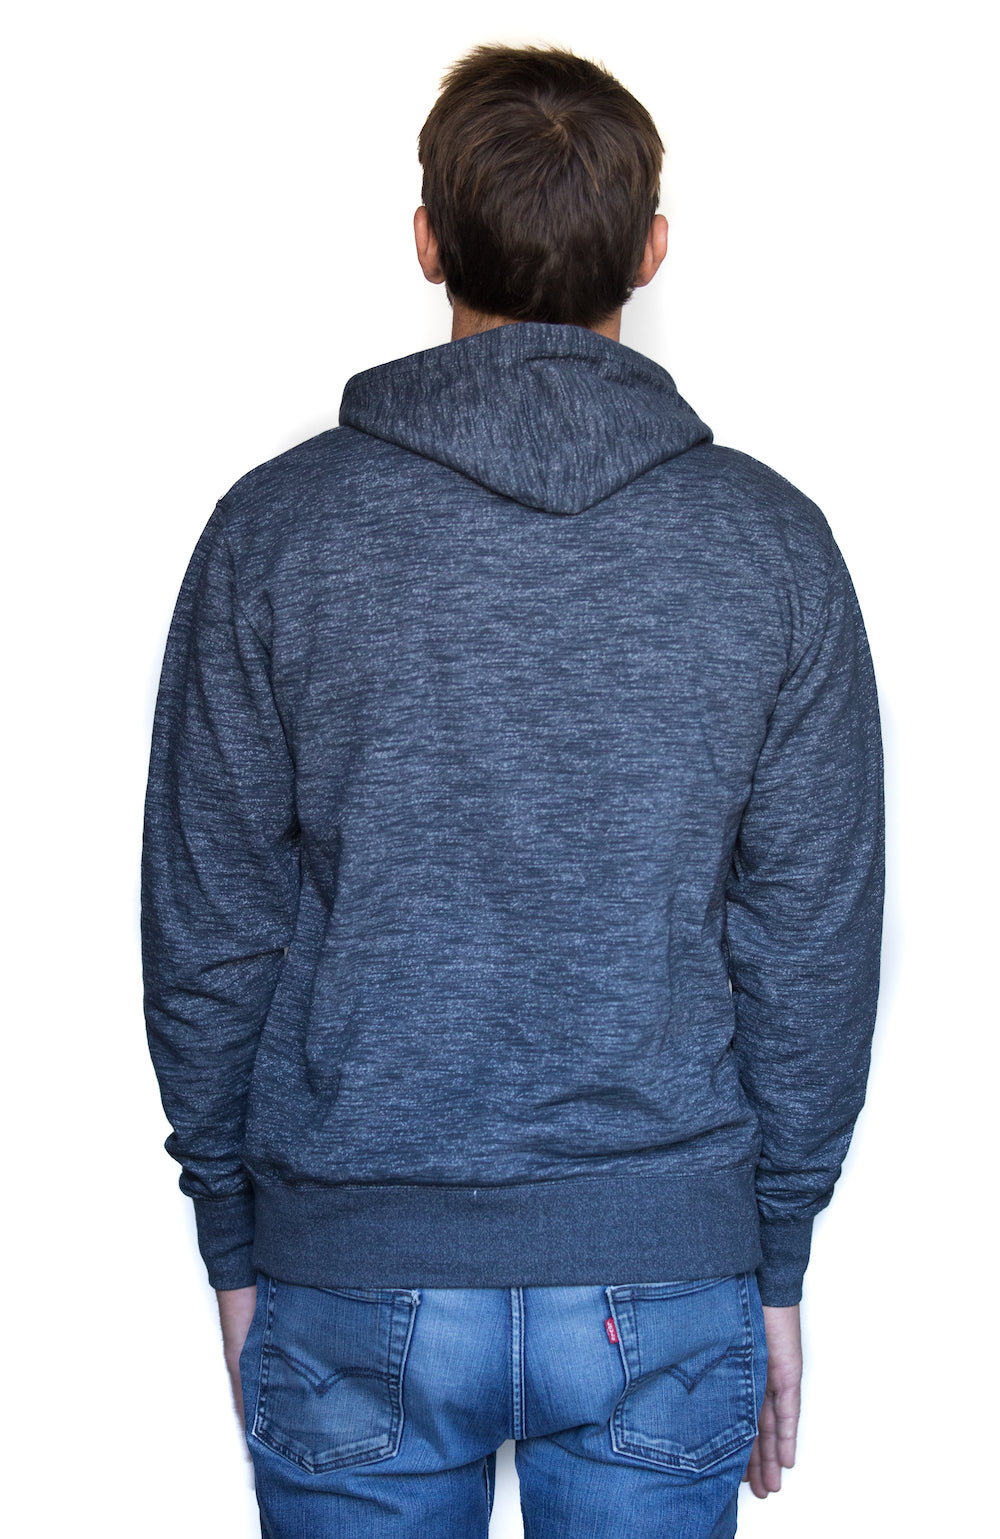 Lost and Found Pullover (Unisex)